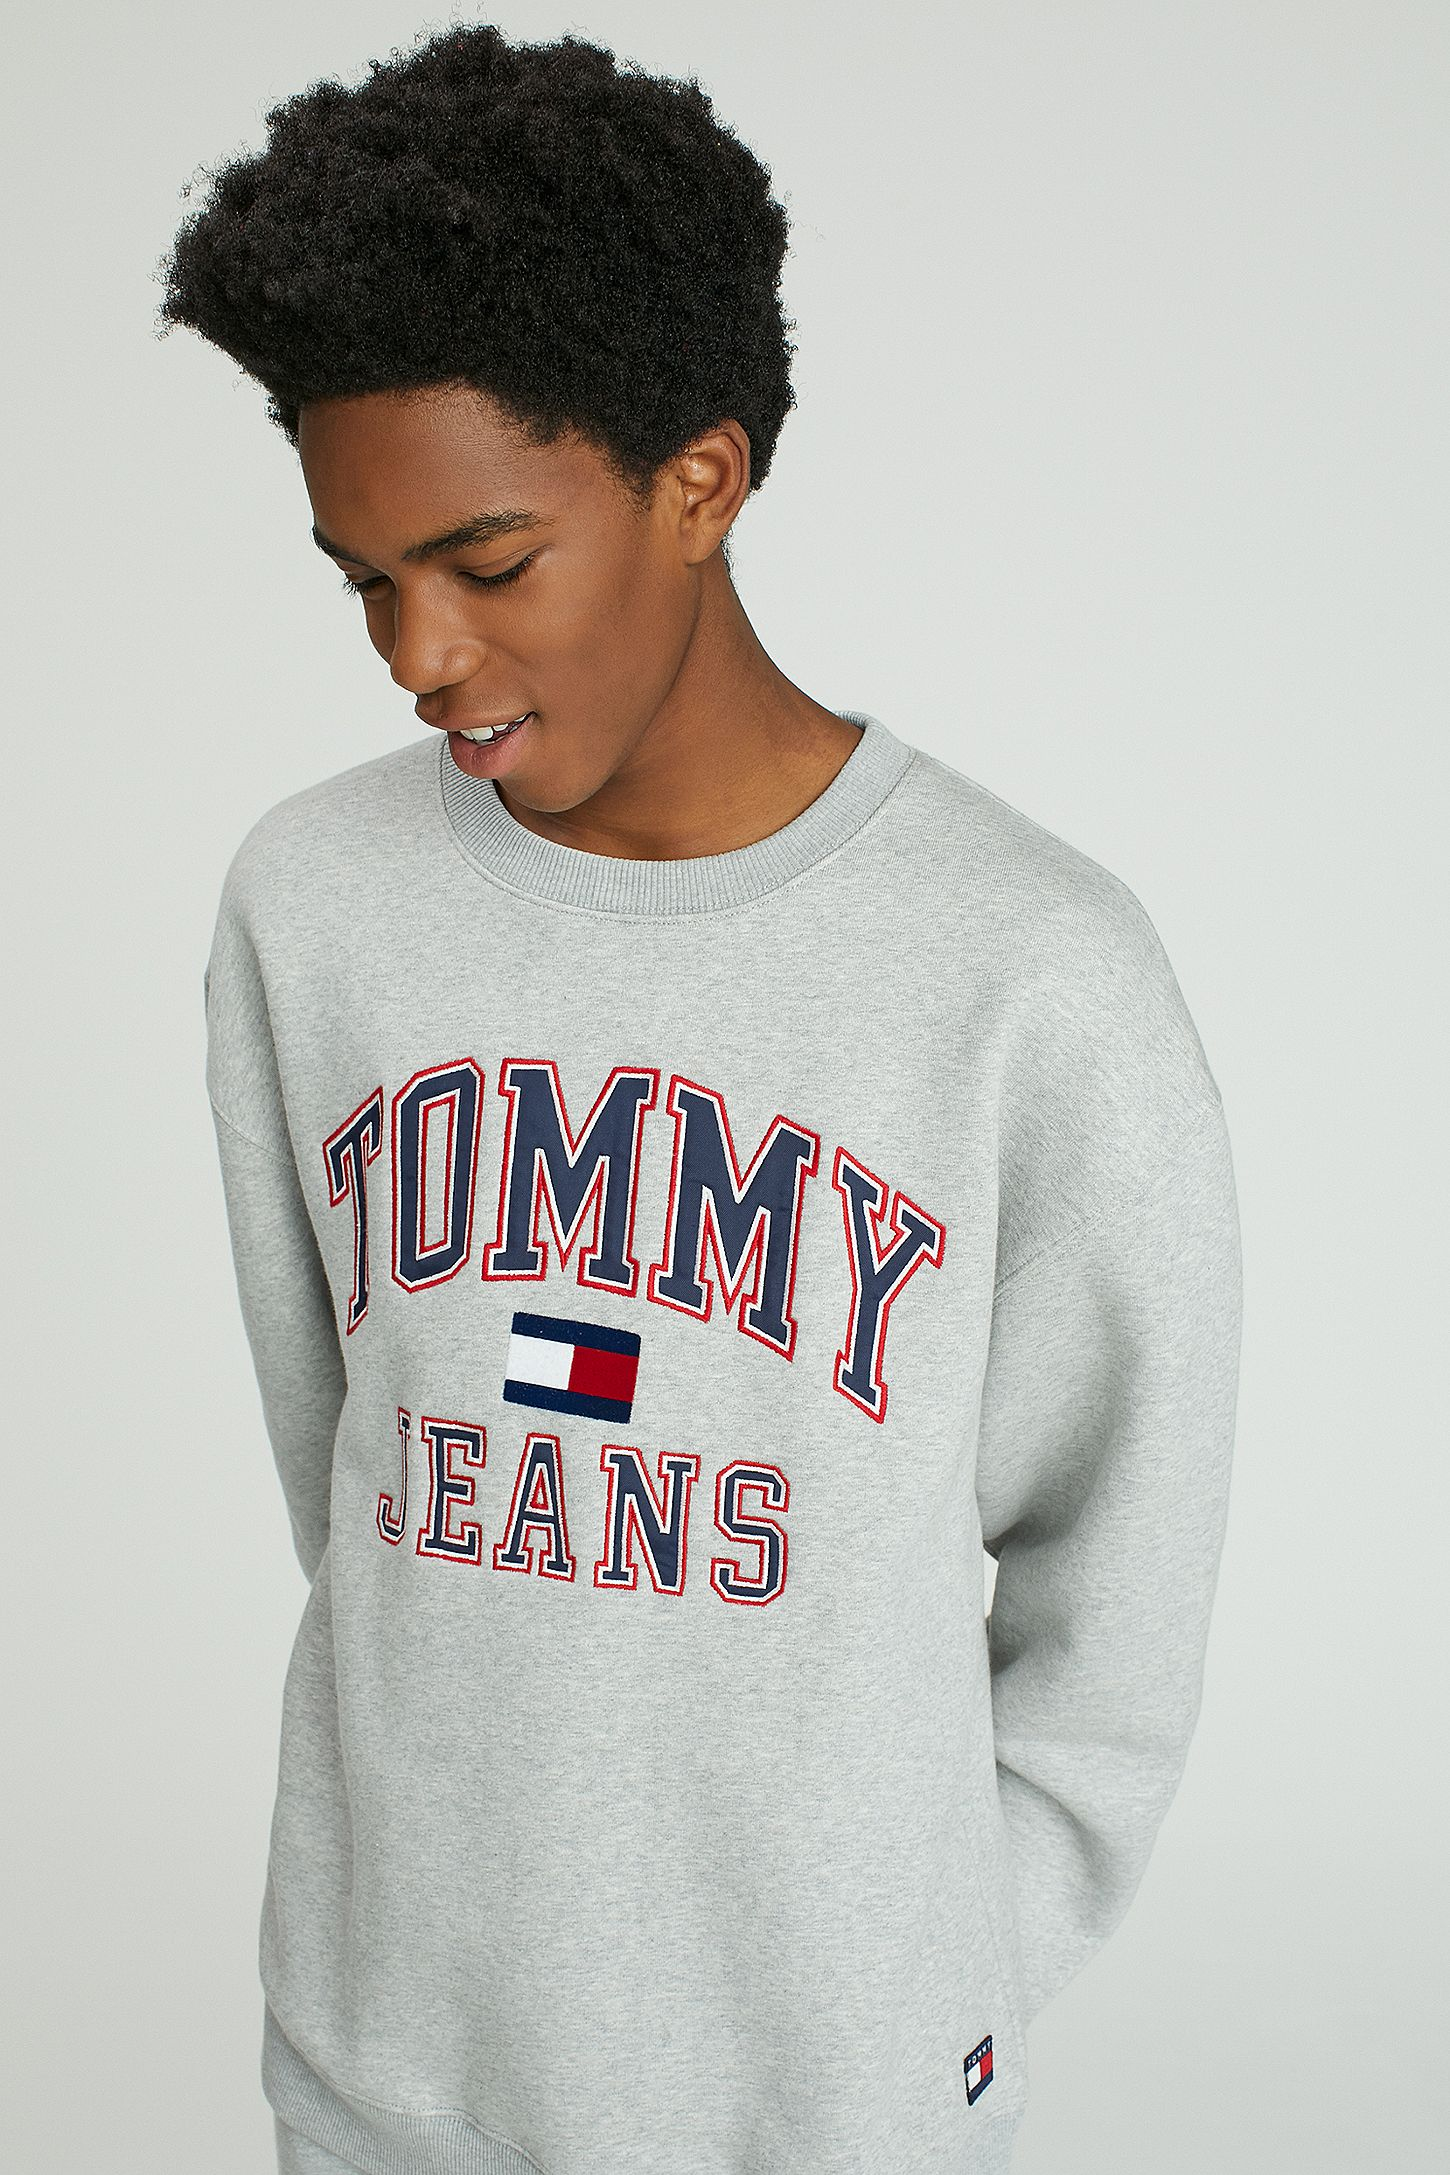 Tommy Jeans  90s Grey Marl Crewneck Sweatshirt. Click on image to zoom.  Hover to zoom. Double Tap to Zoom c6ec60efd8